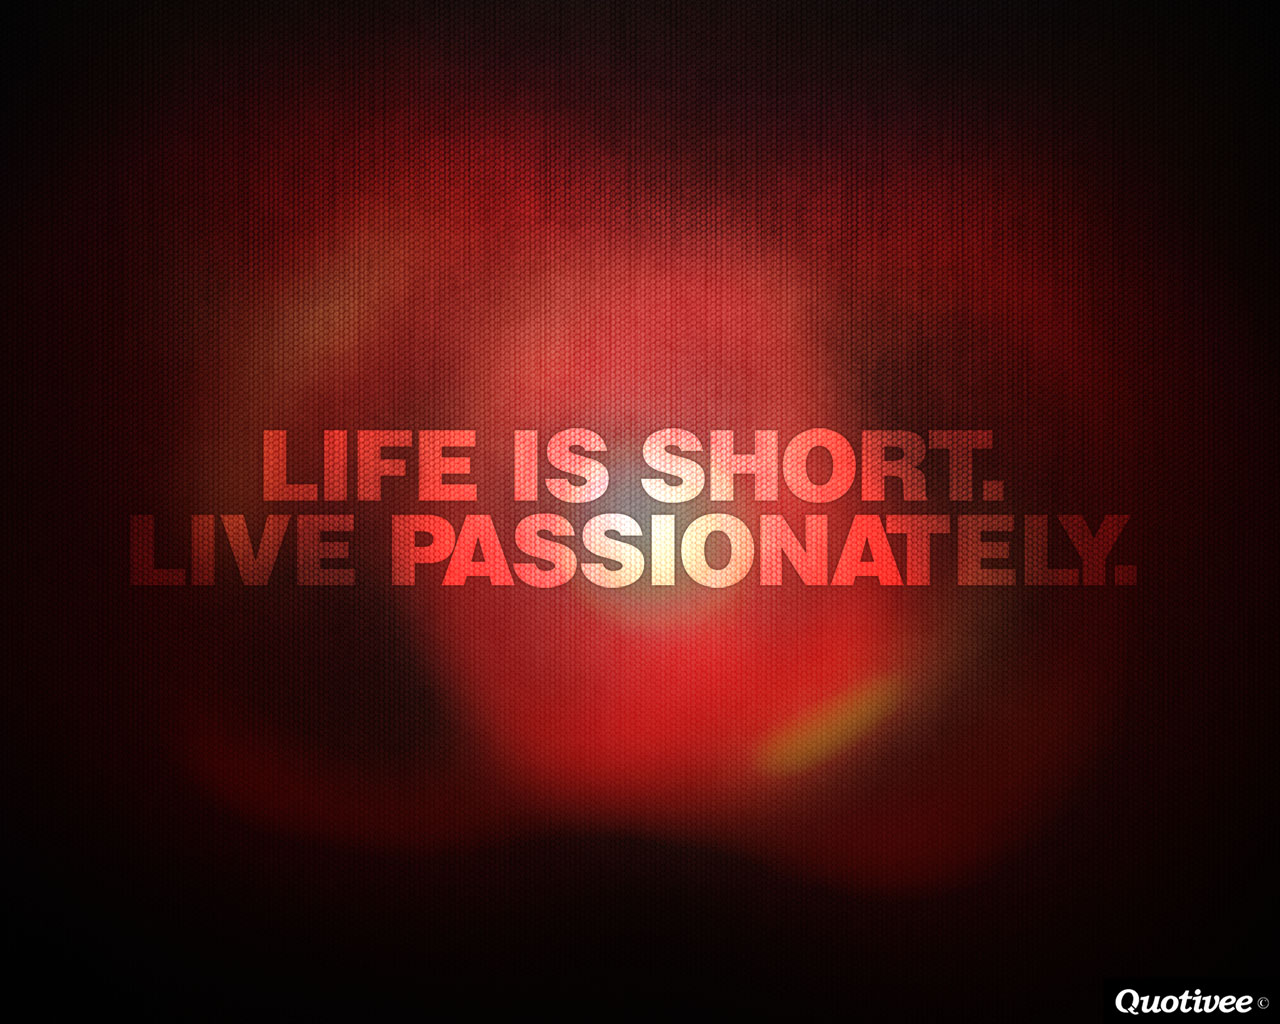 Wallpaper Quote About Life Live Passionately Inspirational Quotes Quotivee